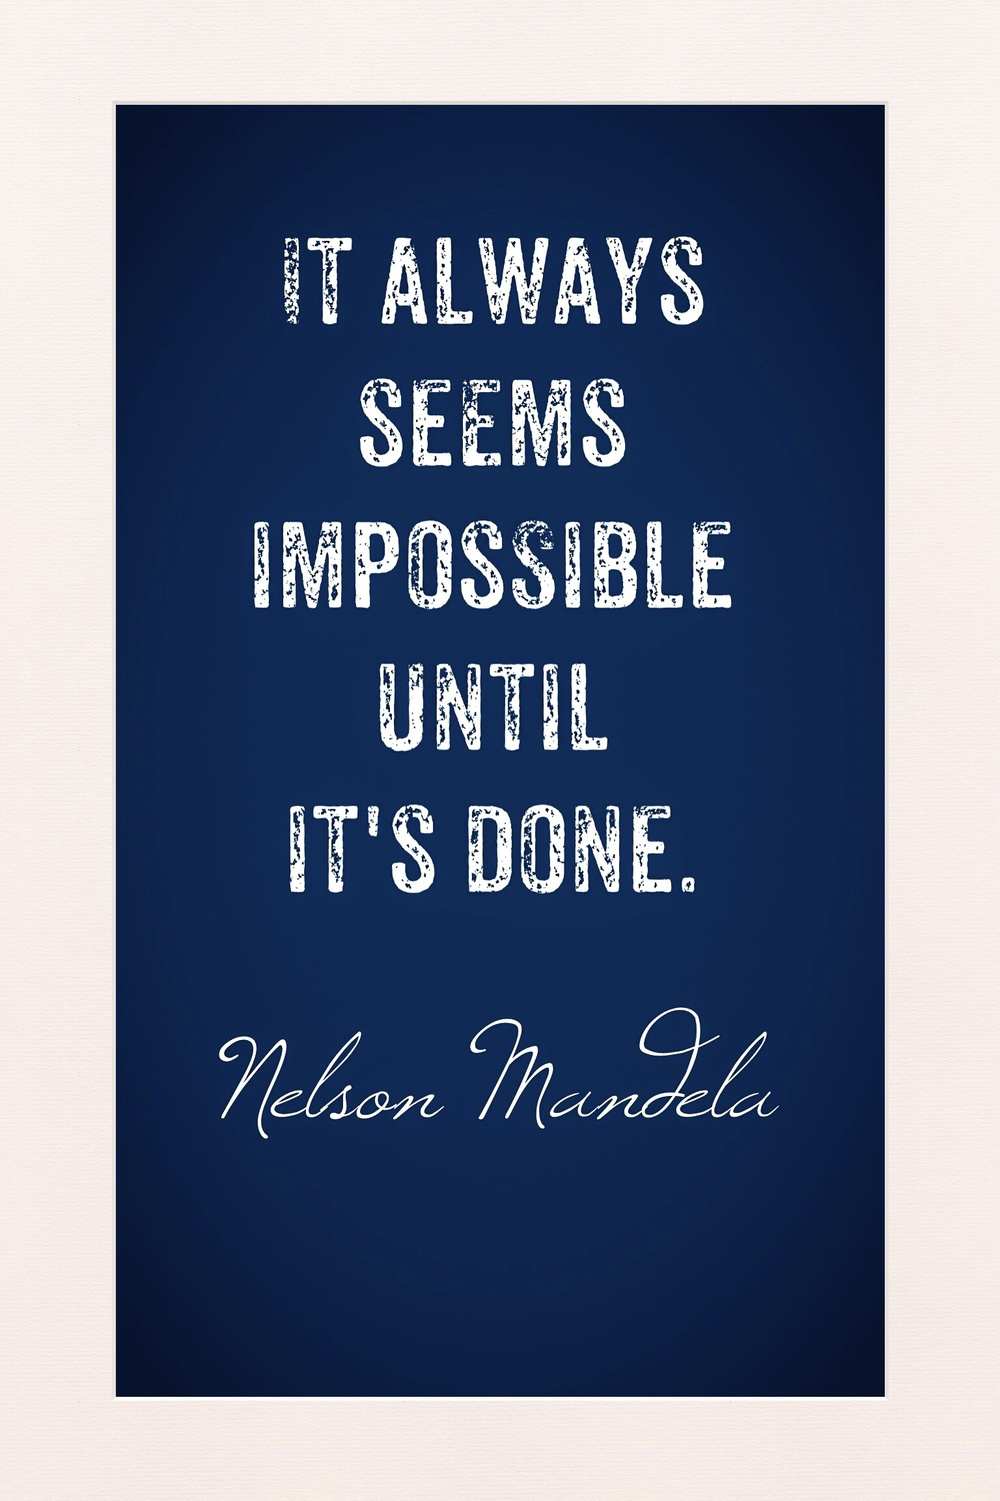 """It always seems impossible until it's done."" -Nelson Mandela  [Not rubber stamped, made on my phone]"